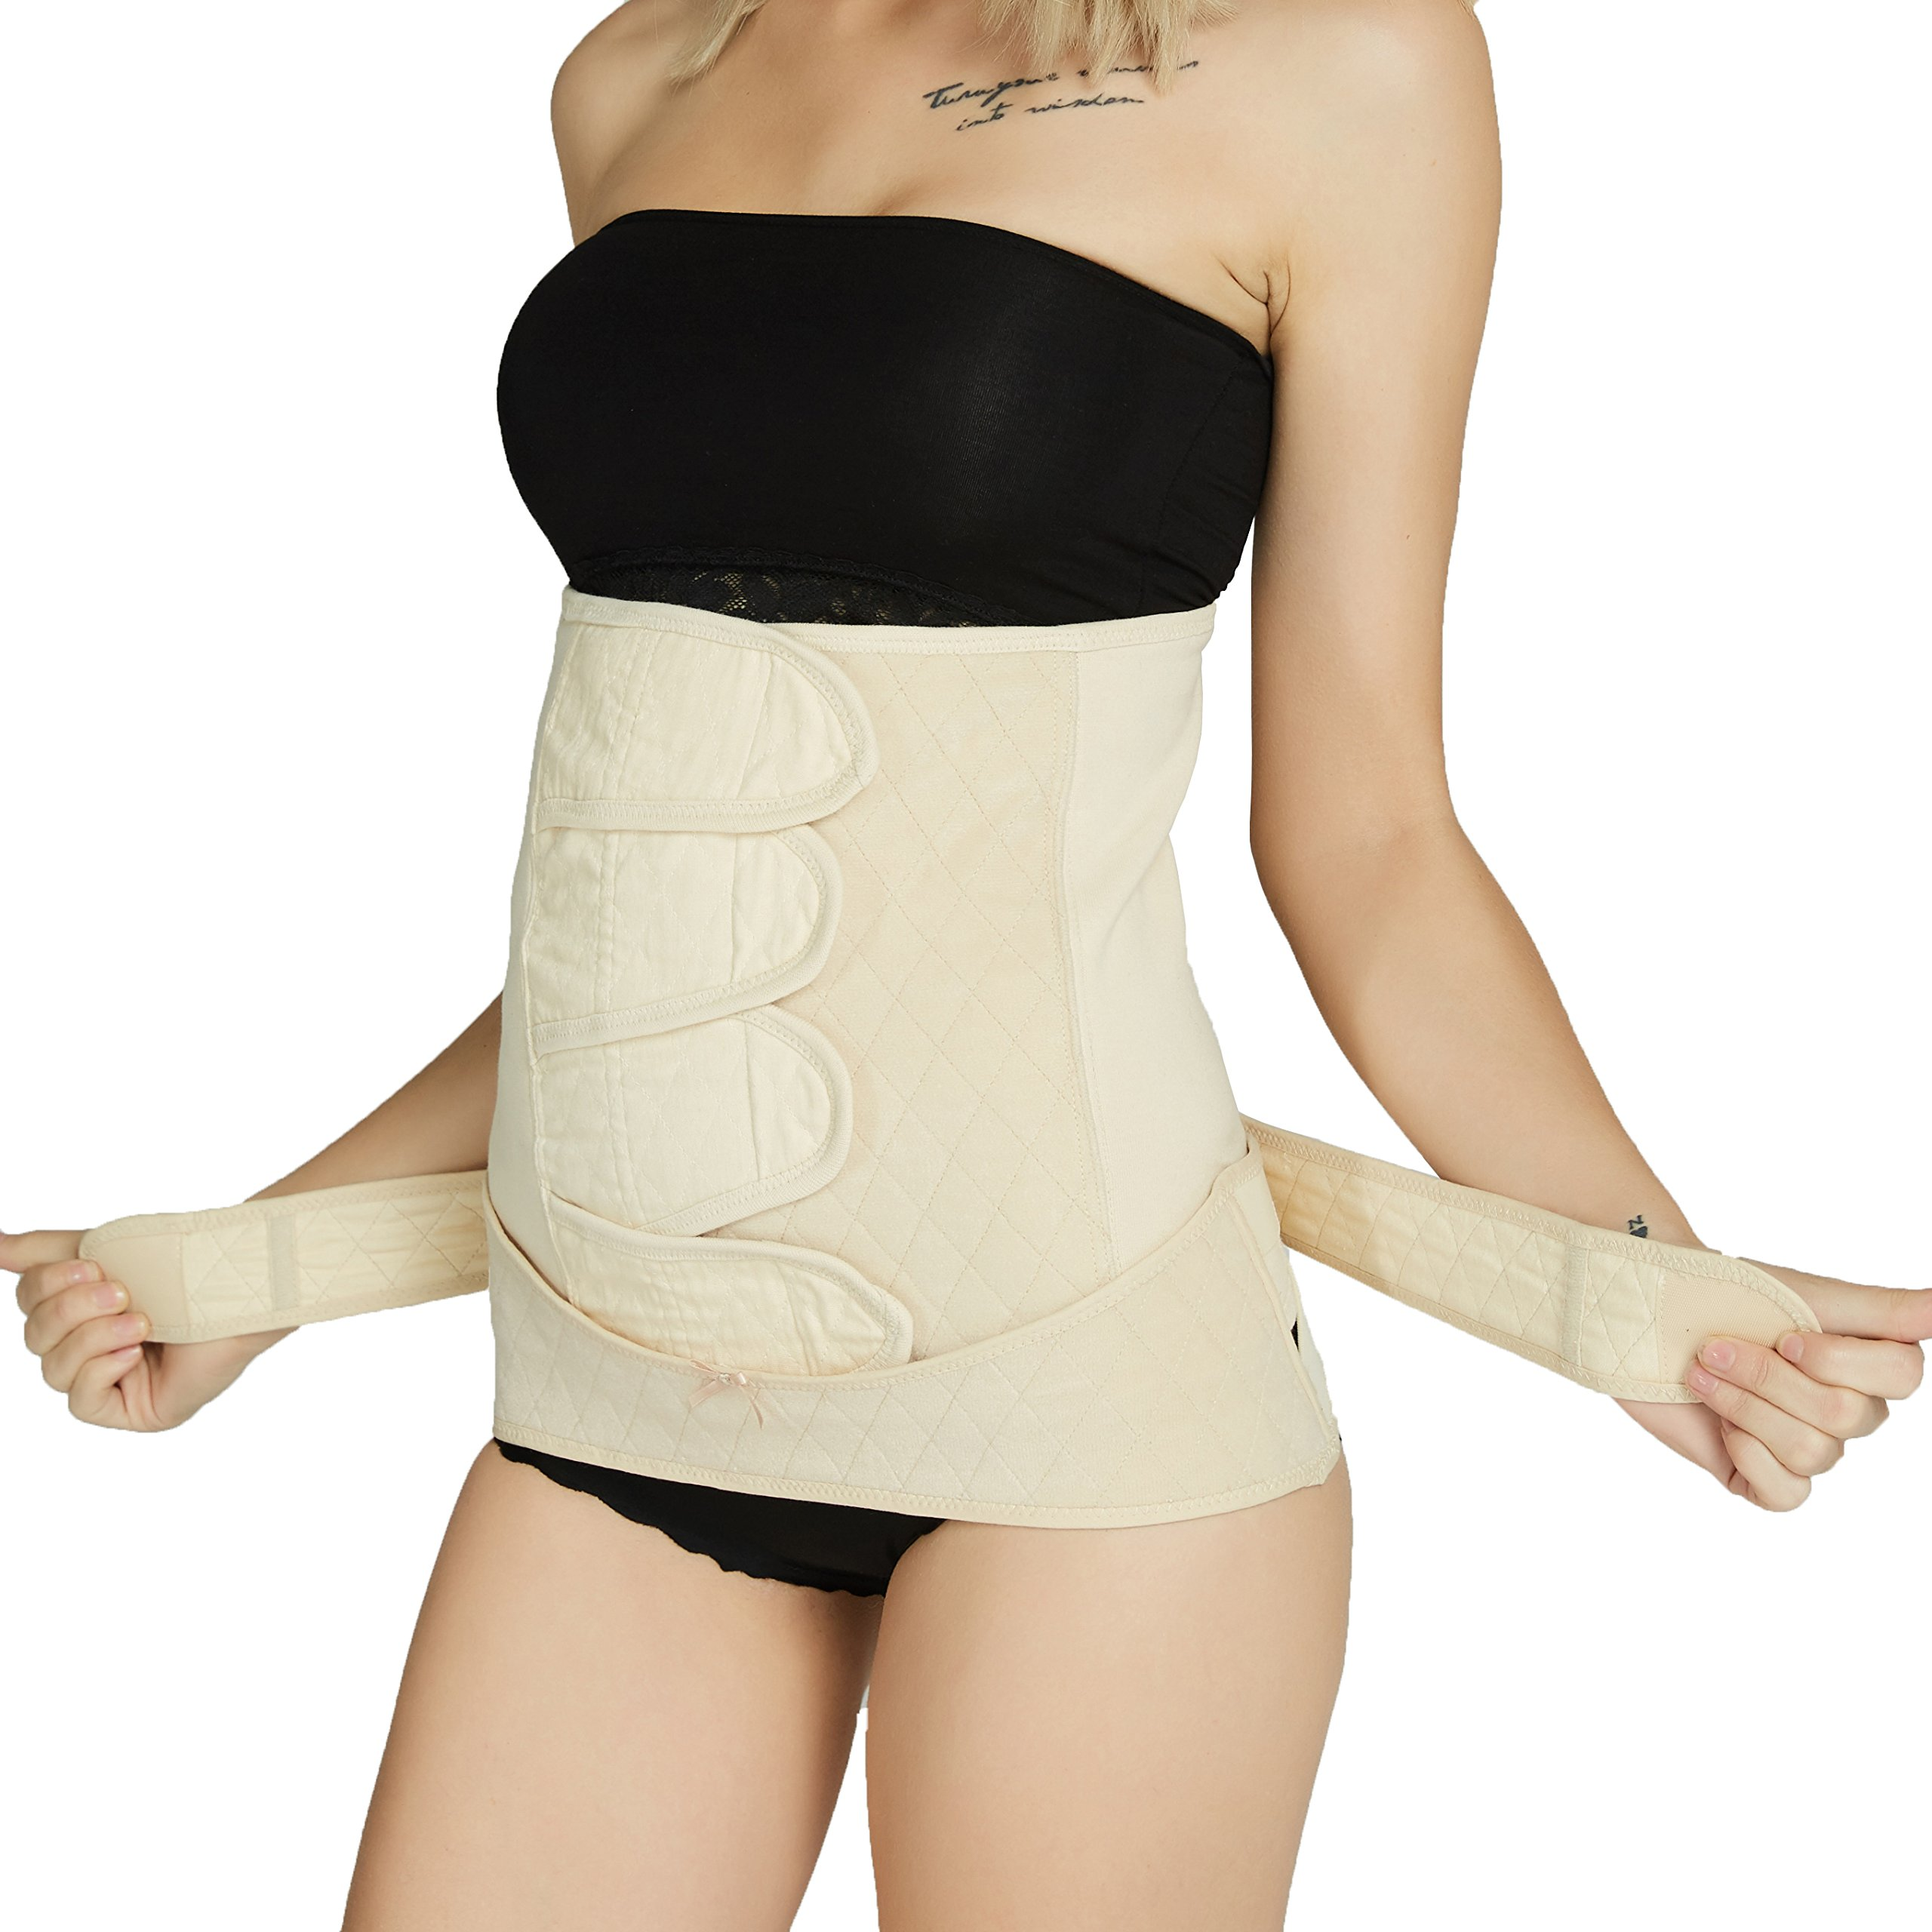 Neotech Care Postpartum Girdle & Pelvis Belt - Cotton - Post Pregnancy Belly Band Support Wrap - for Body Shaping, Tummy Trimming, Flat Stomach (Beige, S)